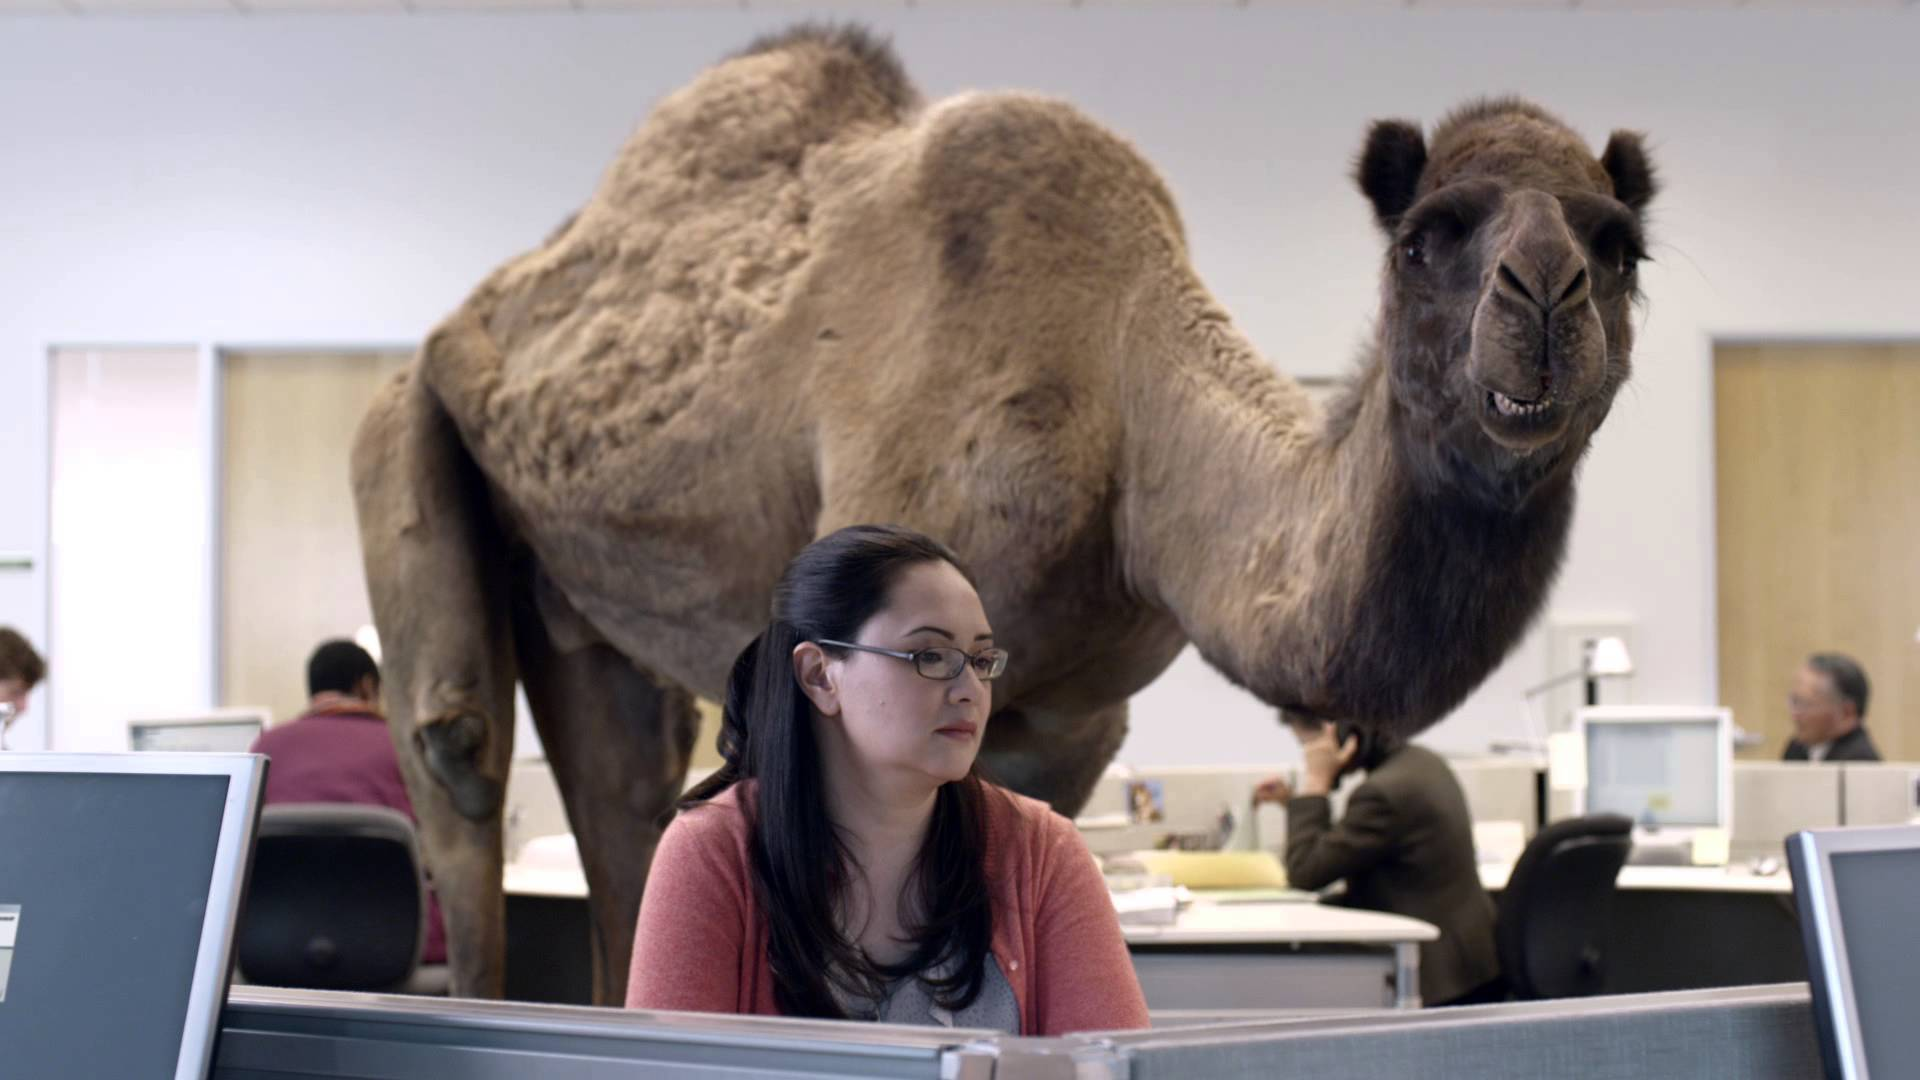 Hump Day Toys : Geico hump day camel commercial happier than a on